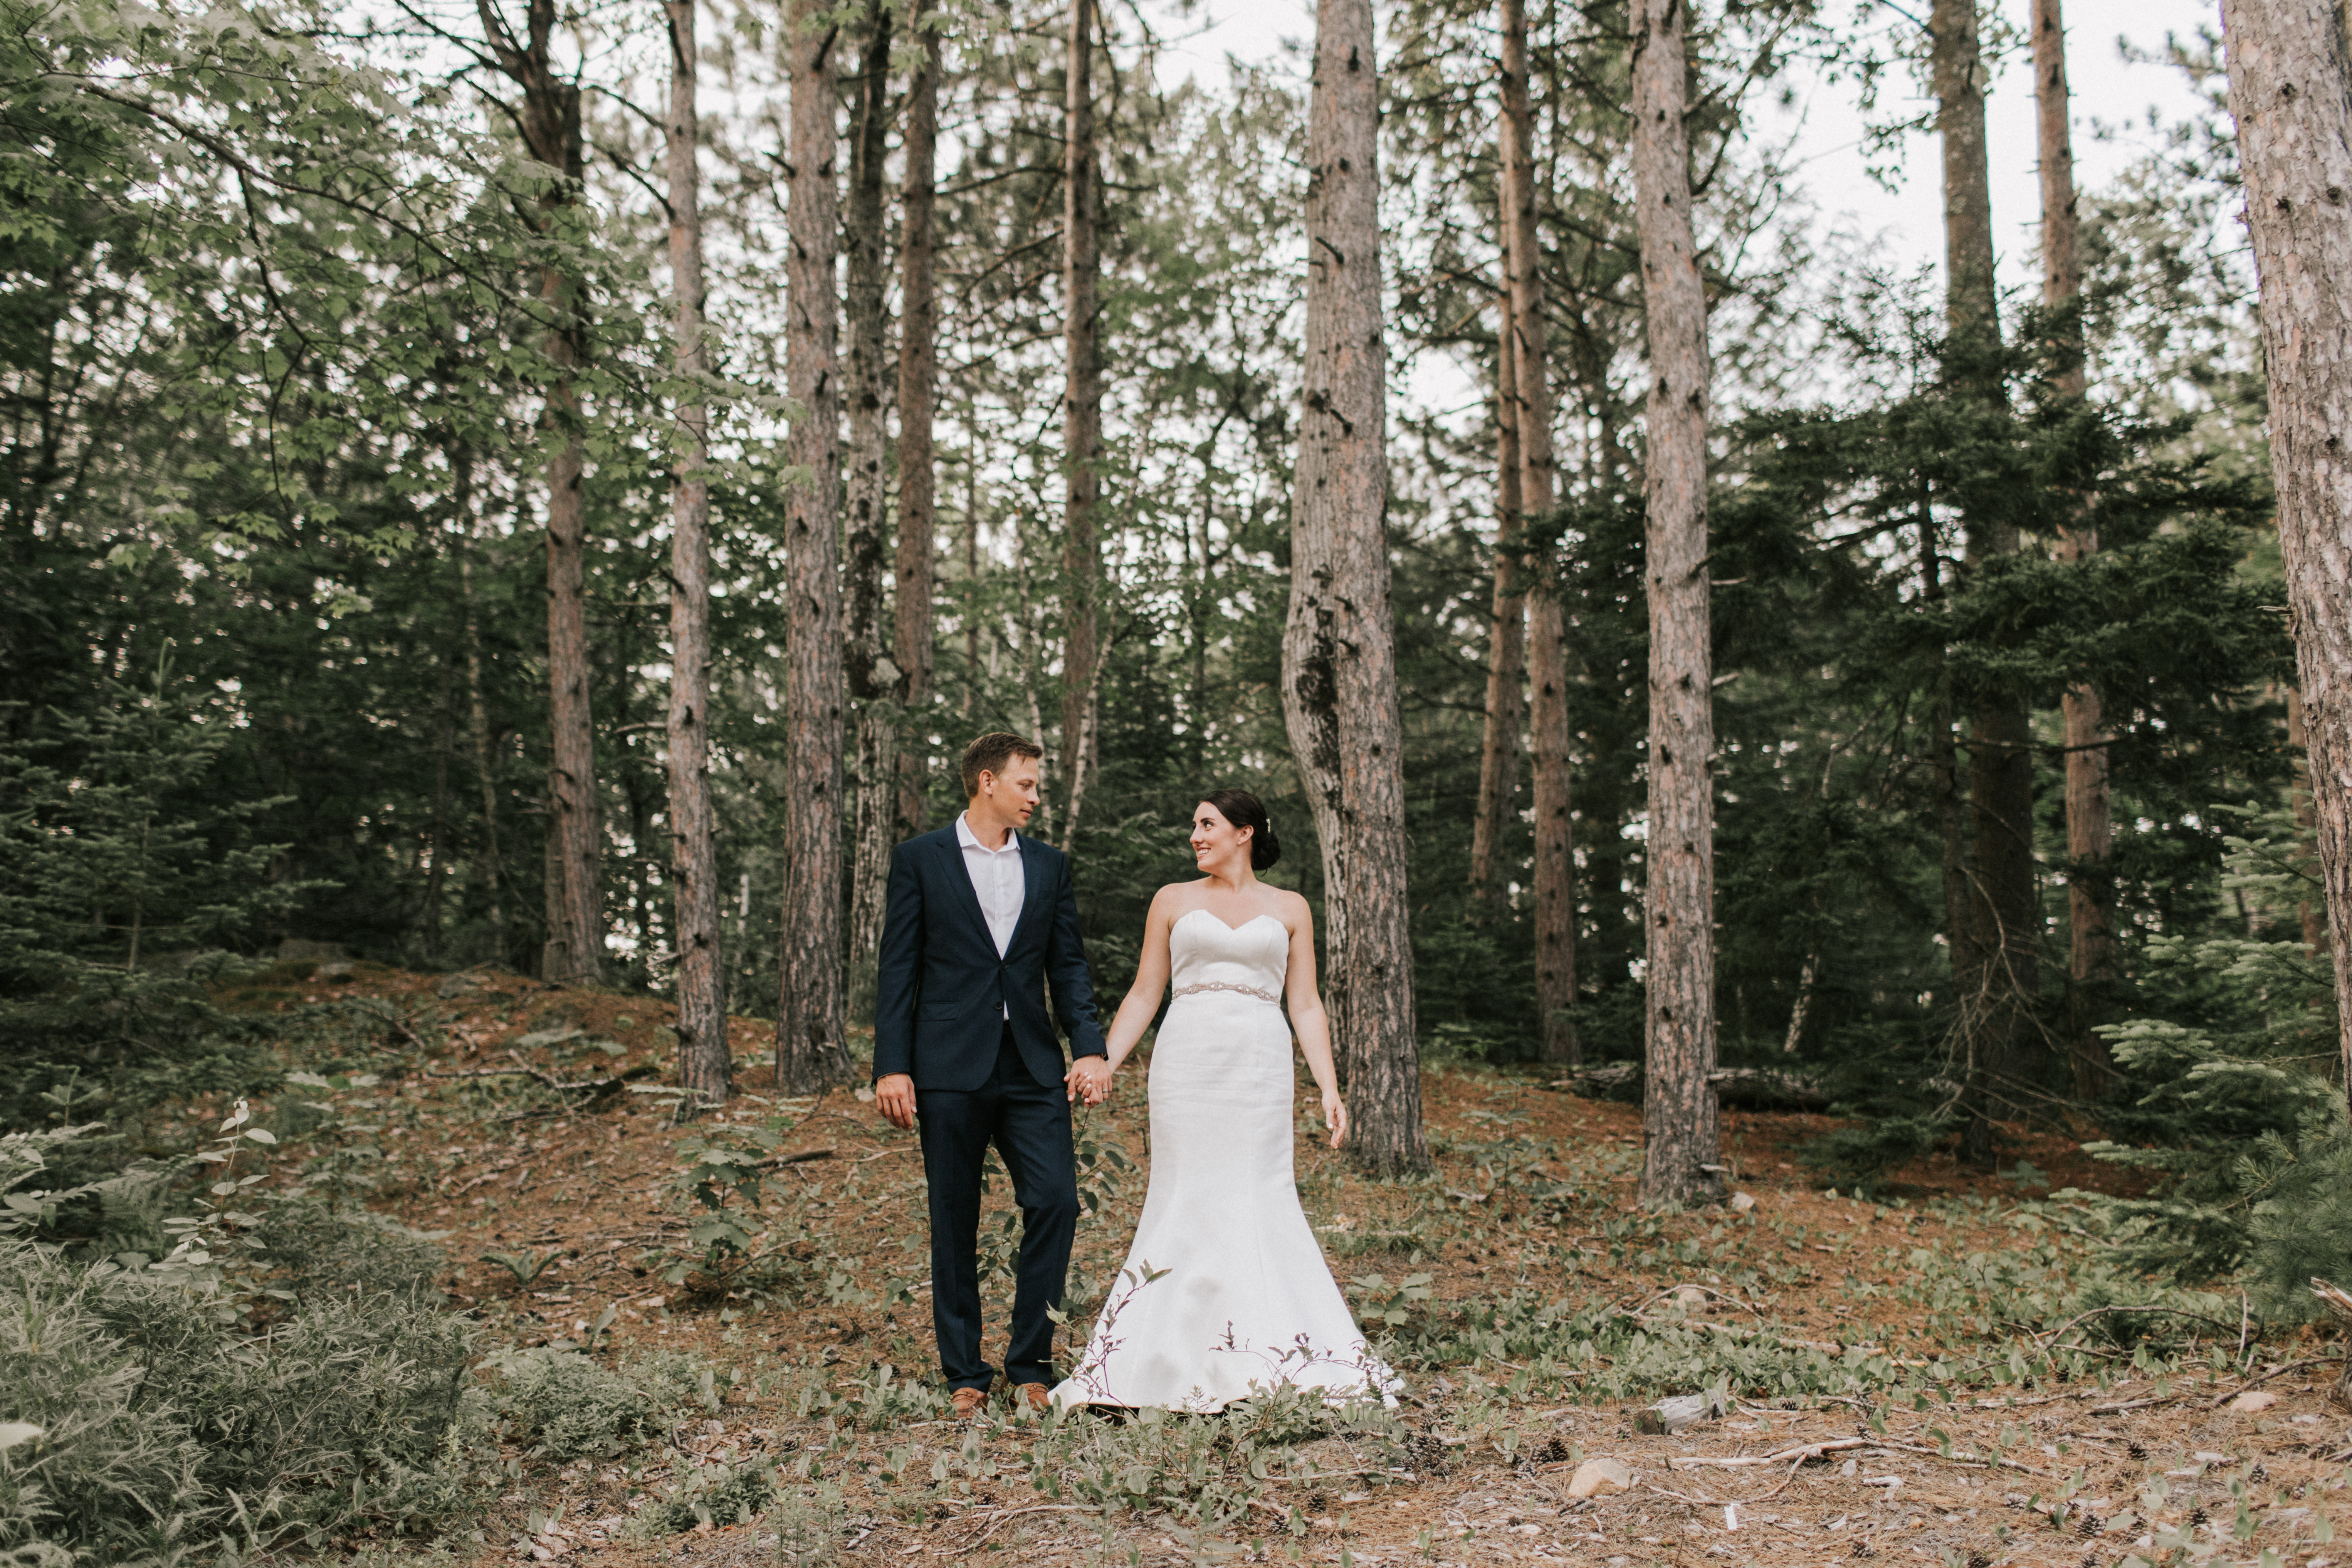 Bride and Groom portrait photography at Hidden Pond Wedding in Kennebunkport, Maine